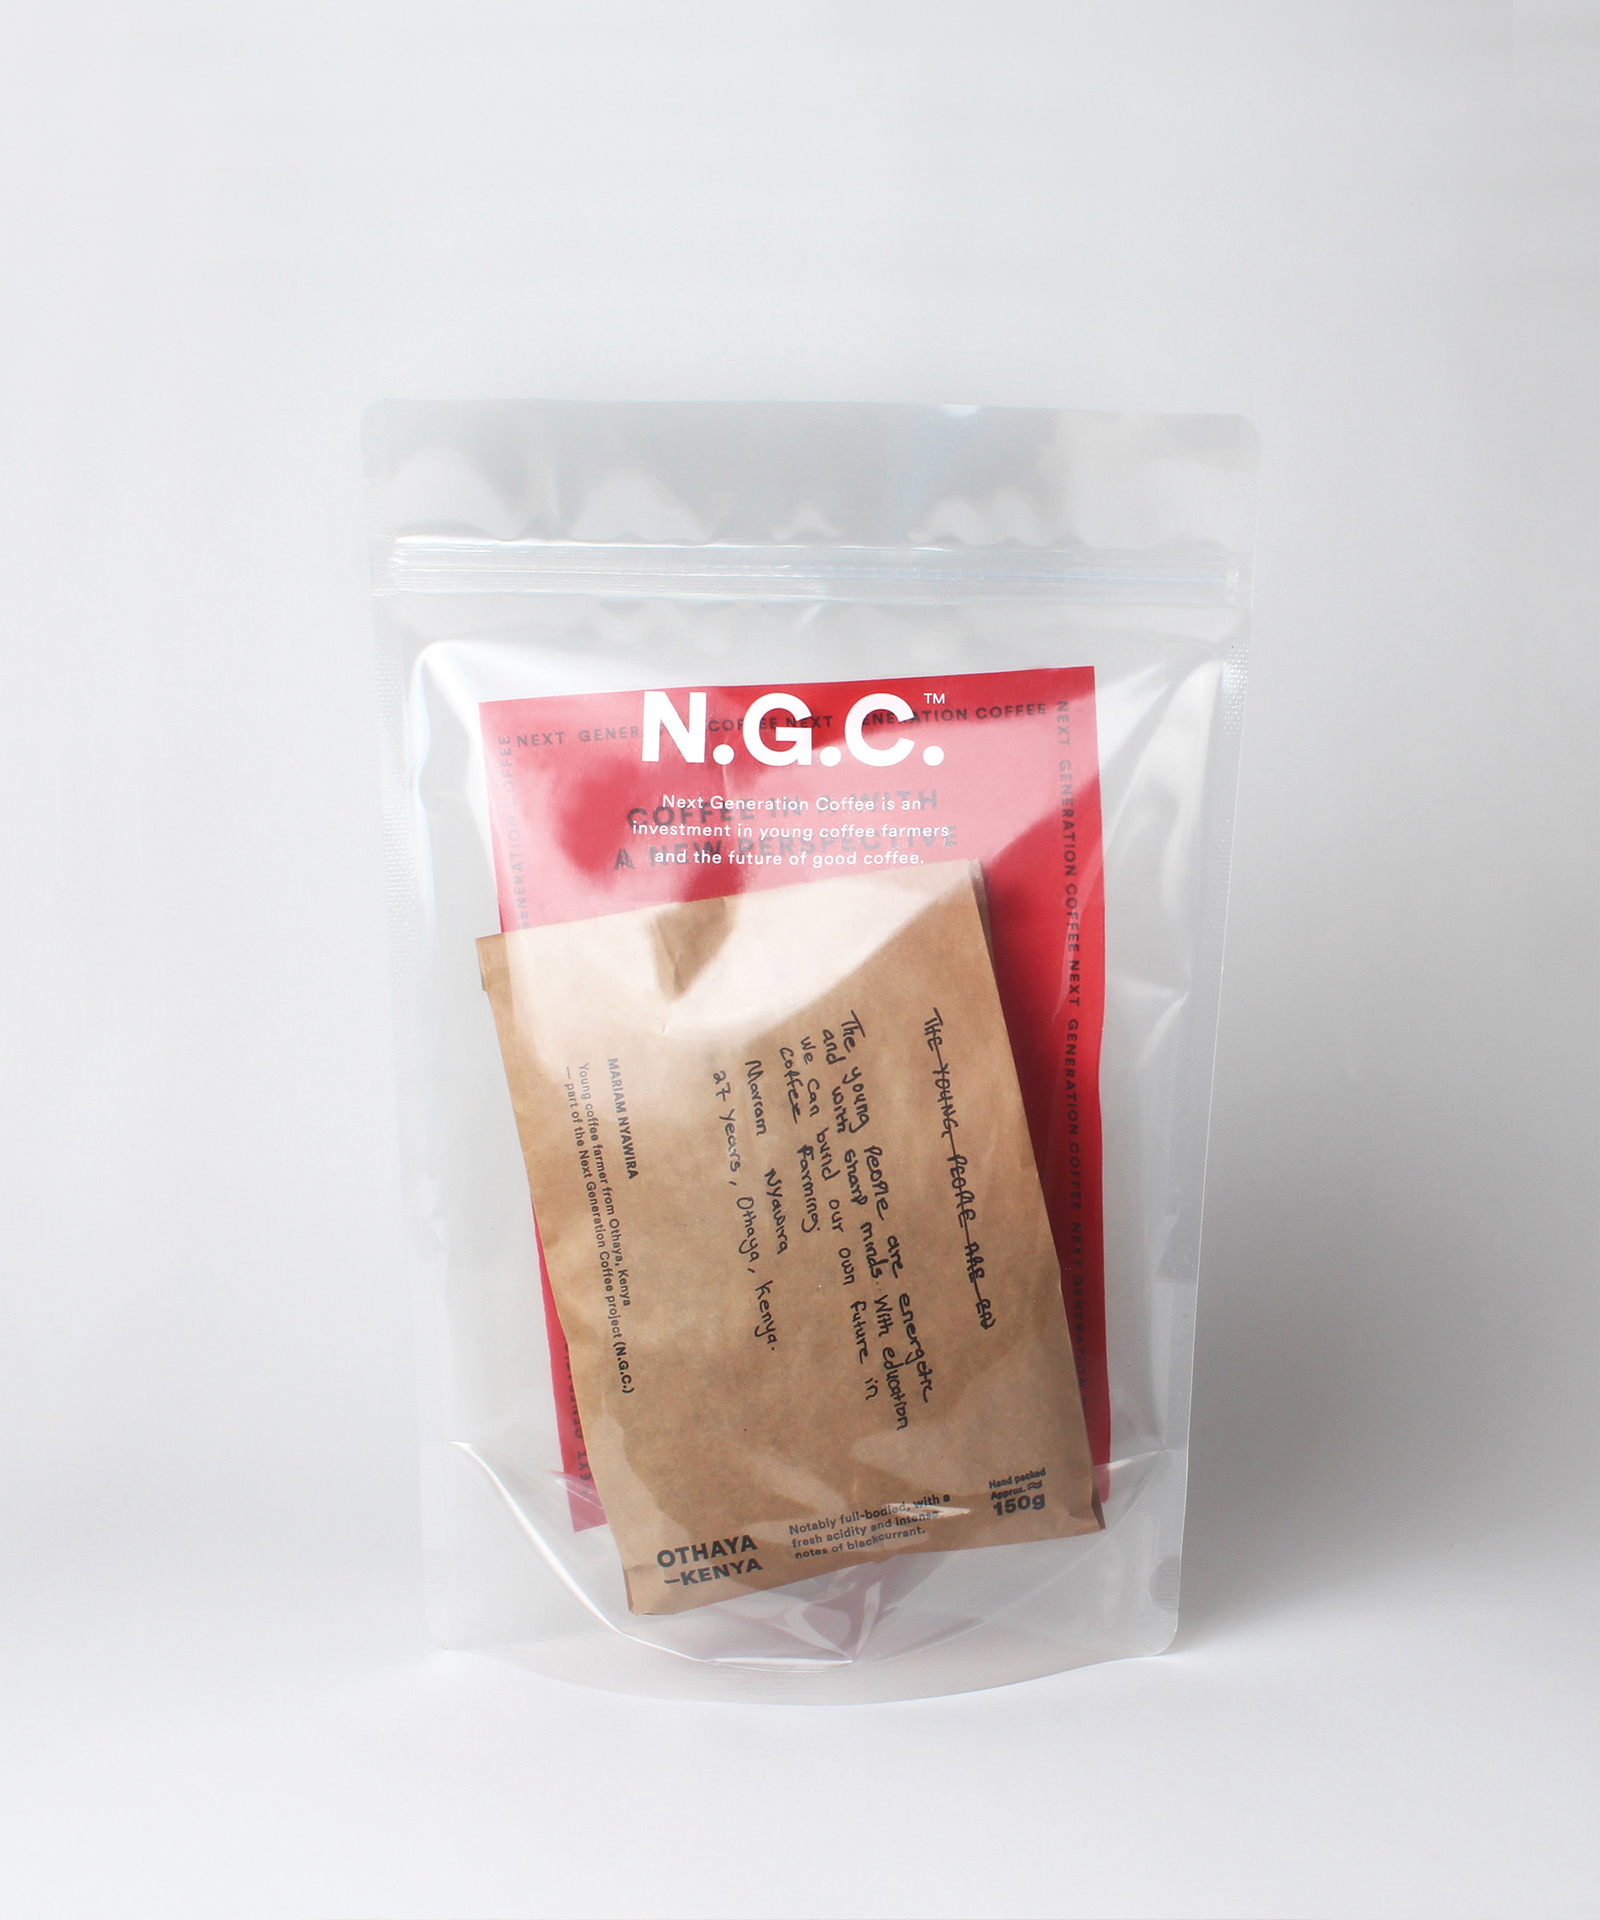 N.G.C. — Transperency for a greather cause